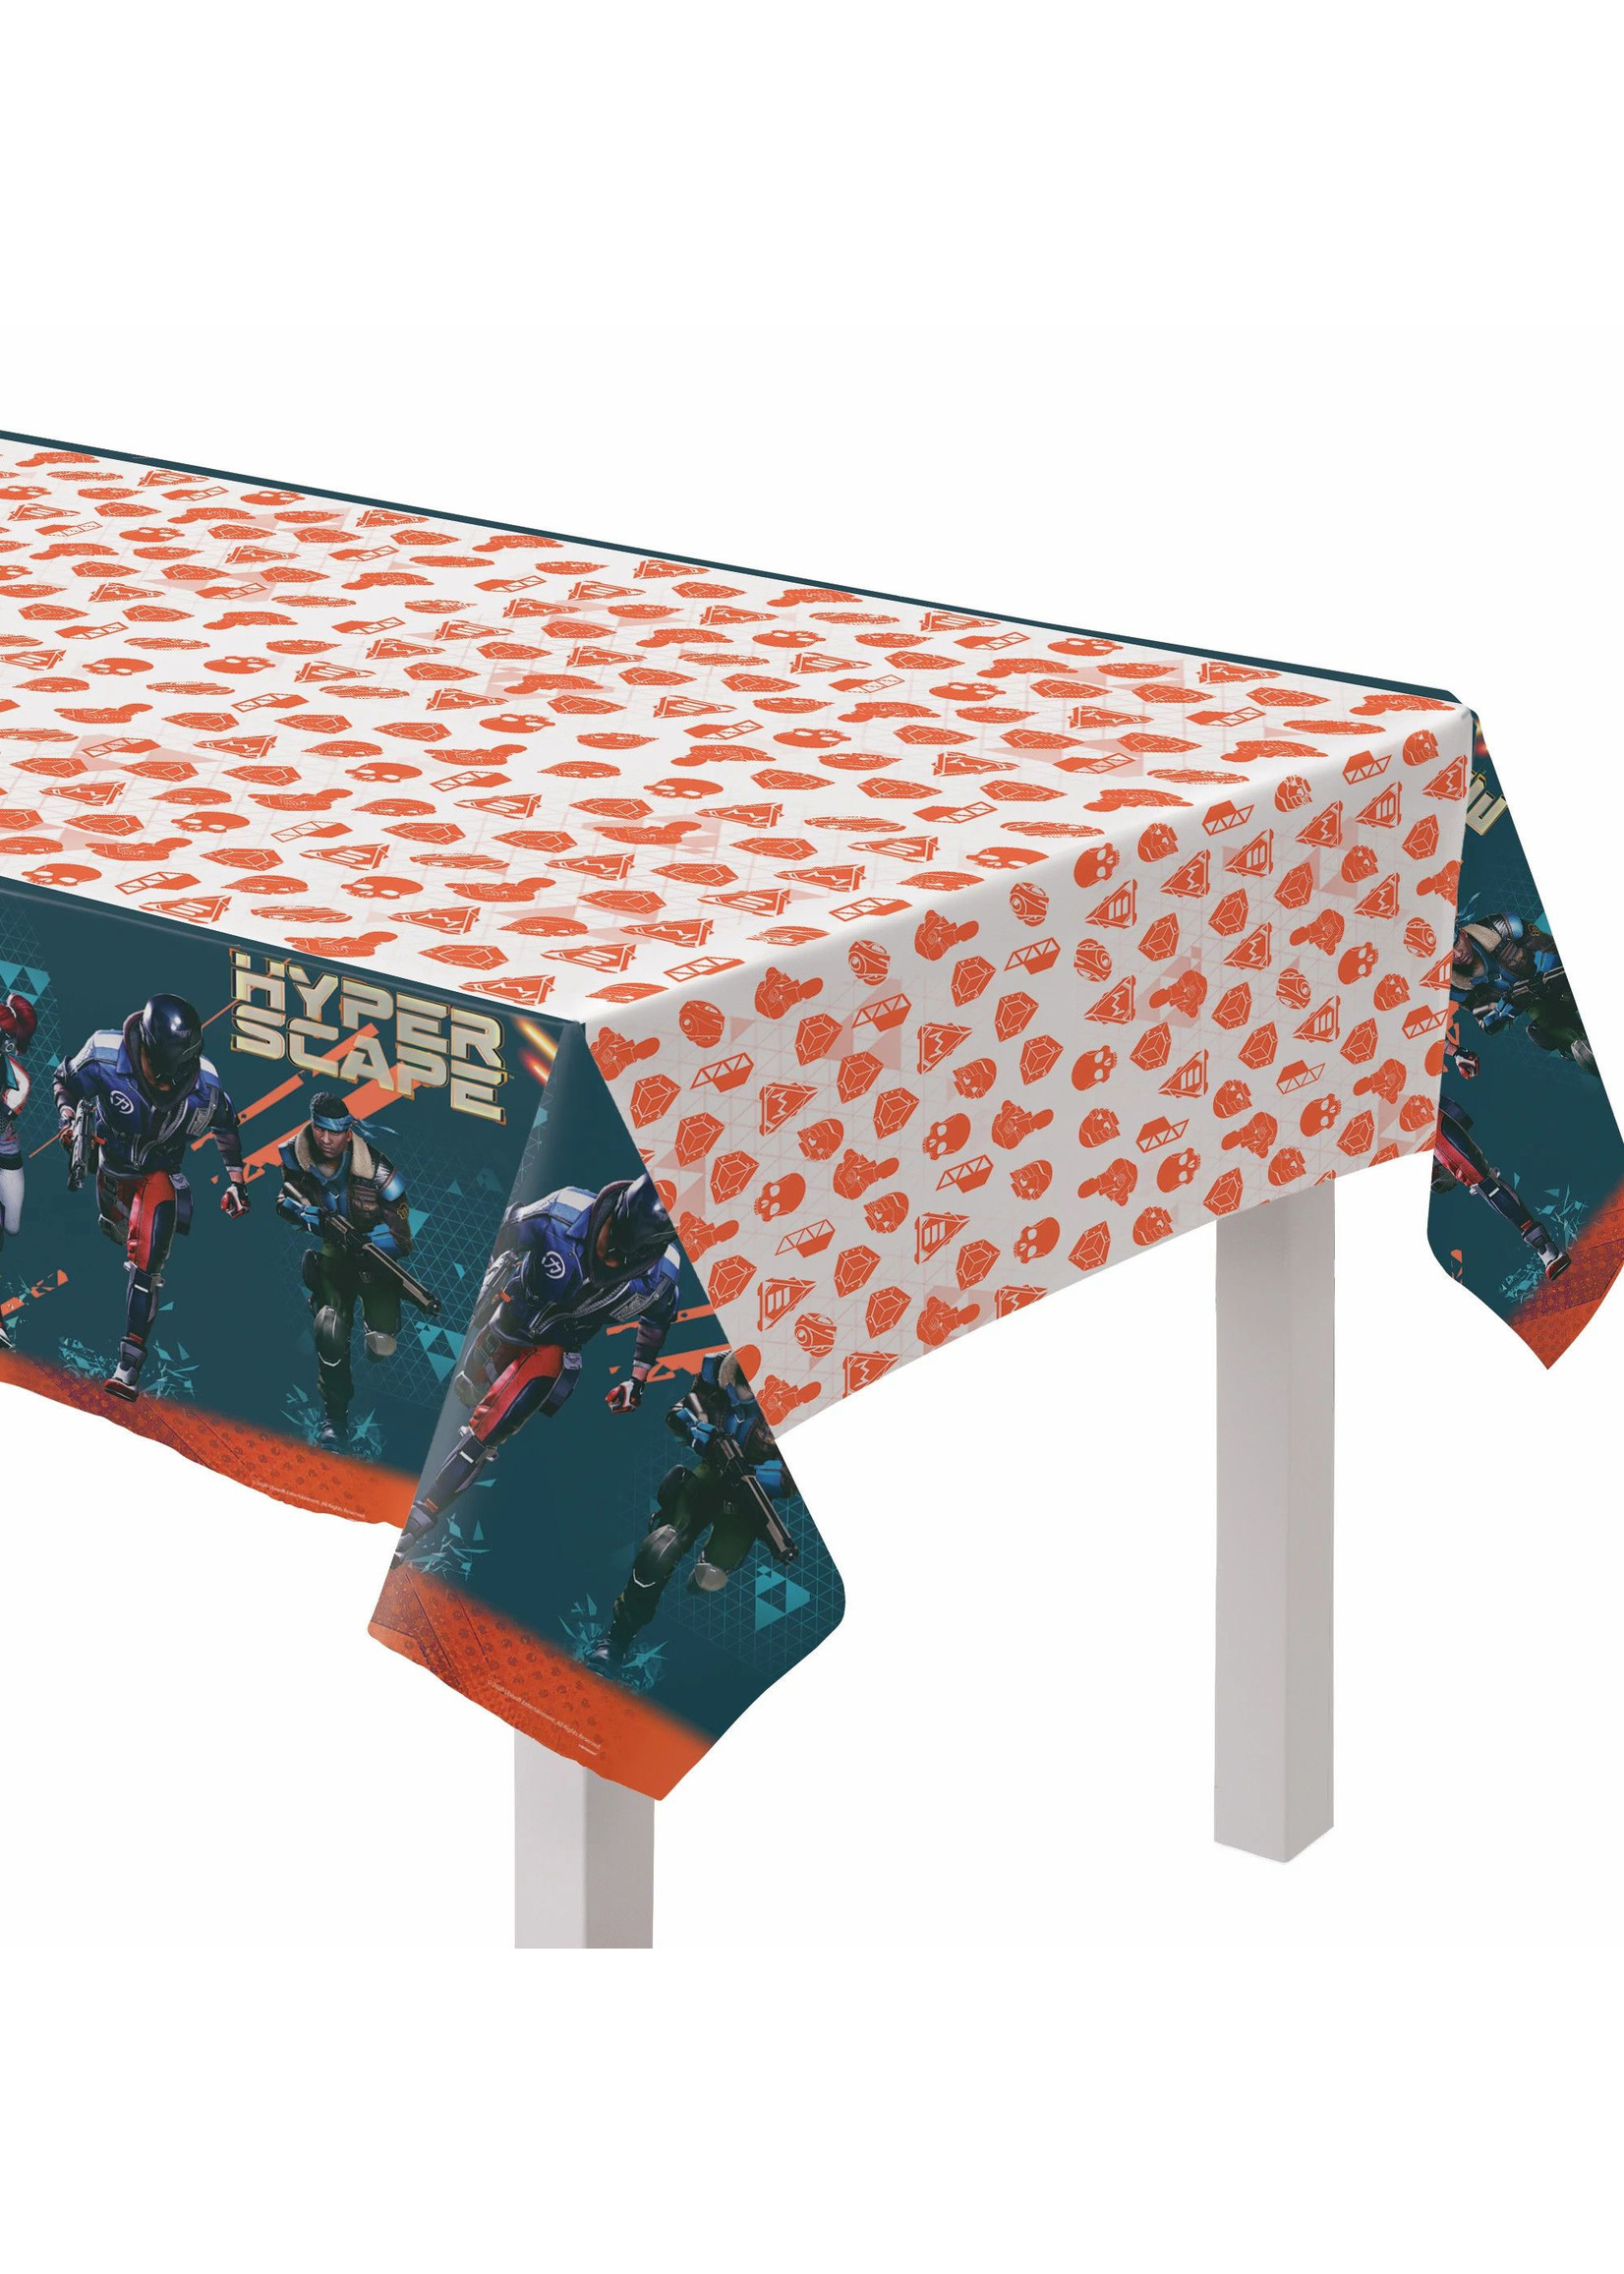 Hyper Scape Table cover Paper